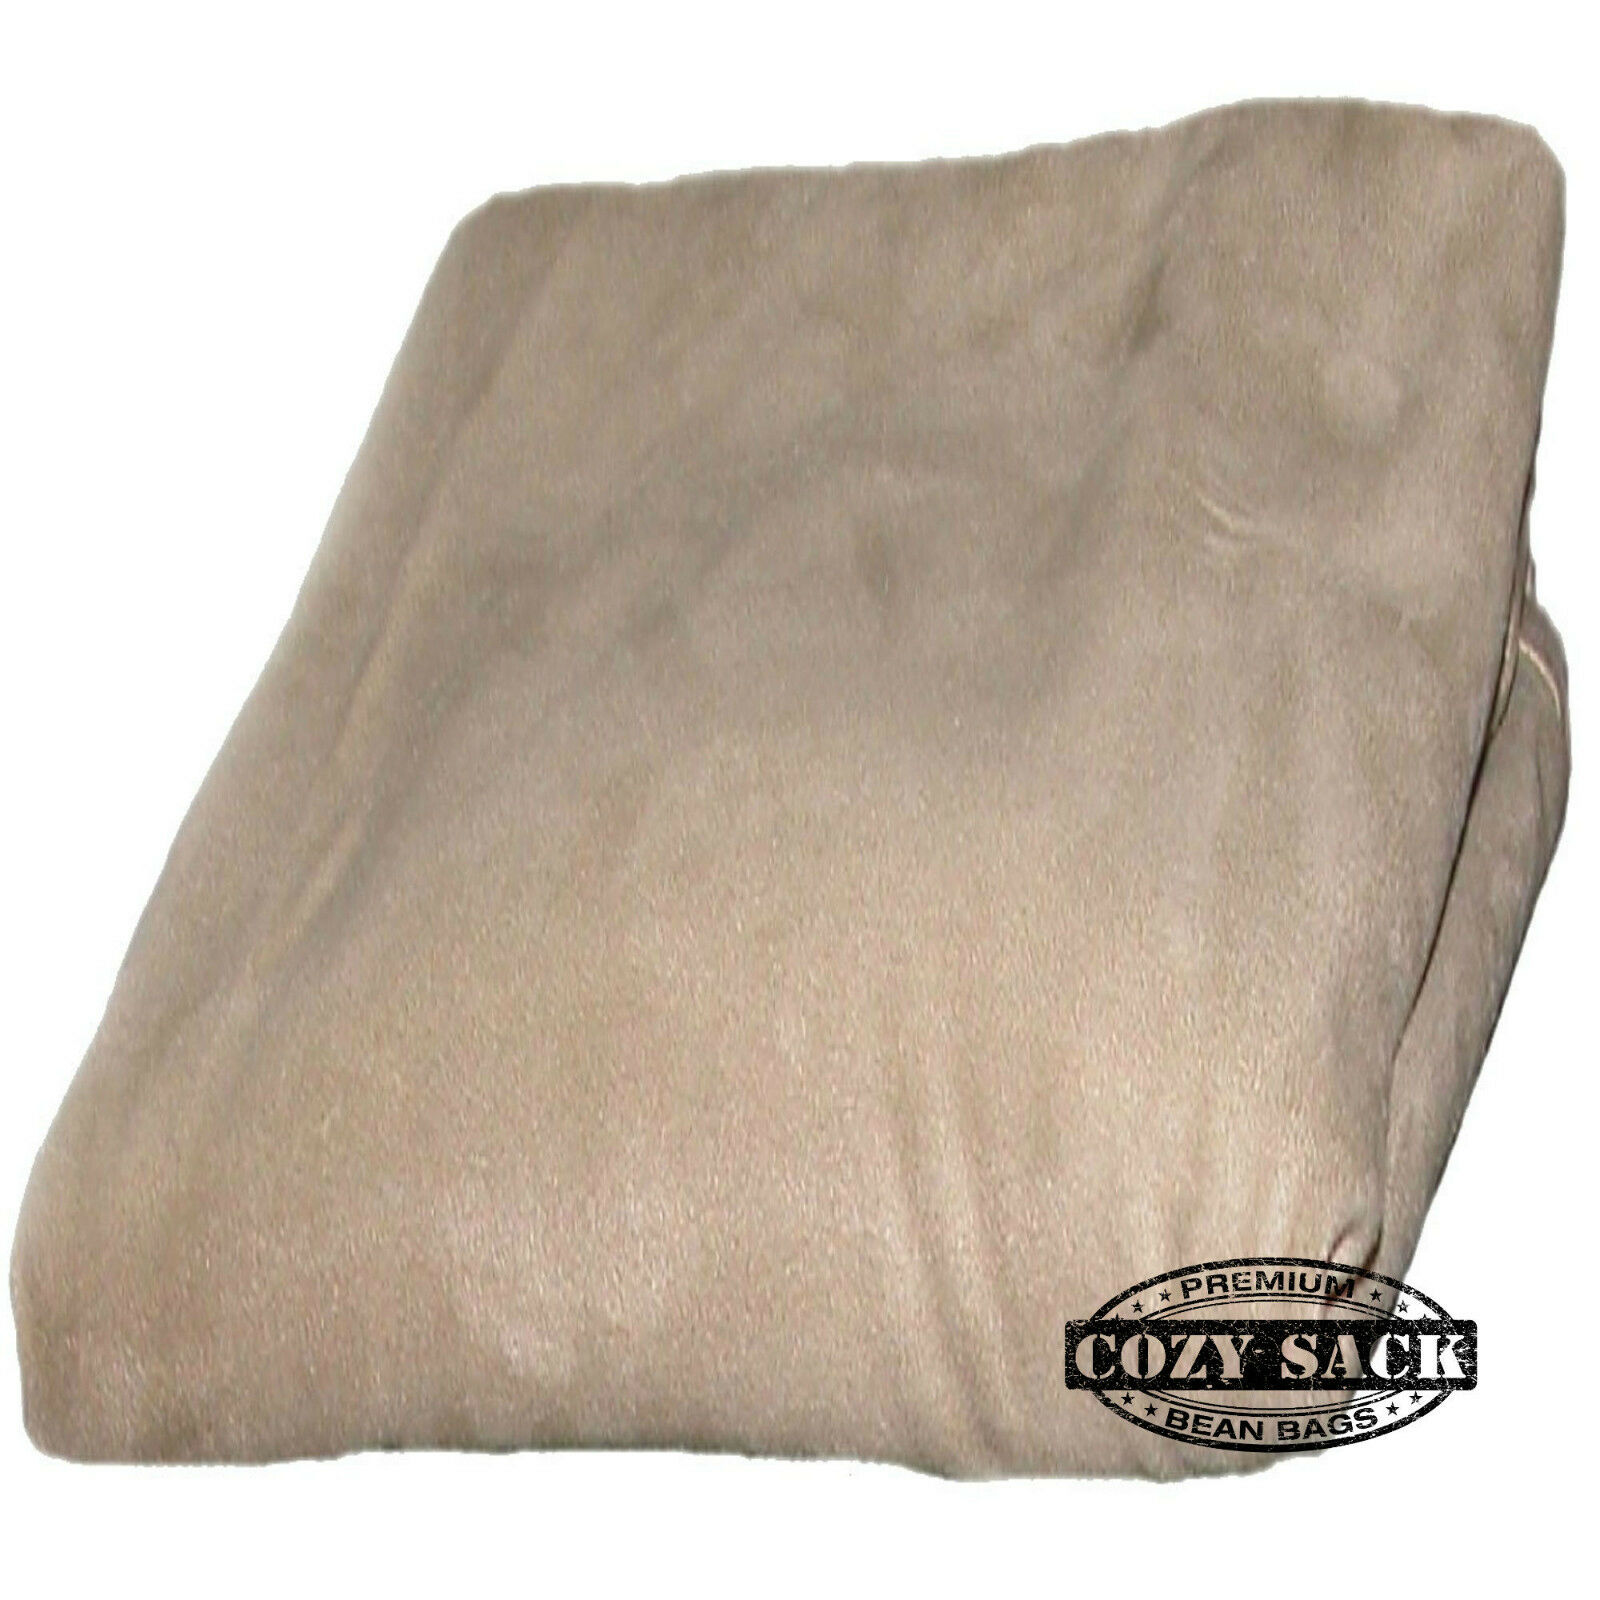 Cozy Sack Replacement Cover For Bean Bag Chair Buckskin